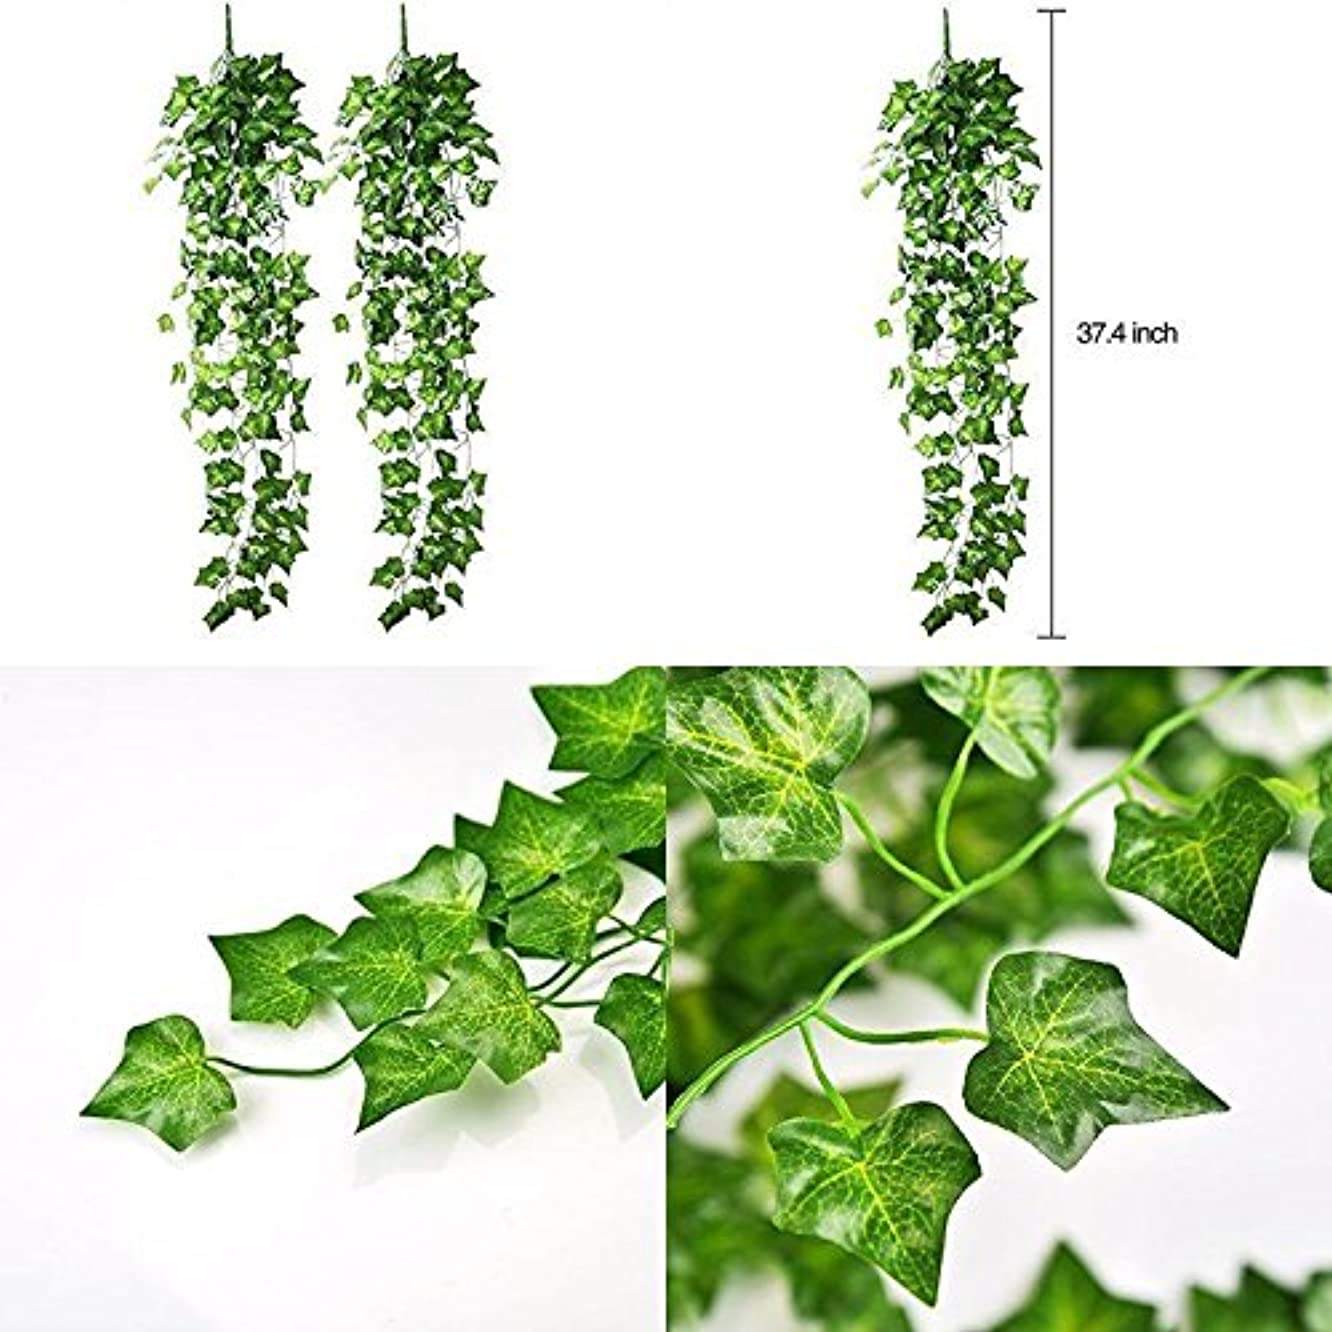 Plant Artificial Ivy Hanging Vine Leaves Garland Wedding Party Garden Wall Decor